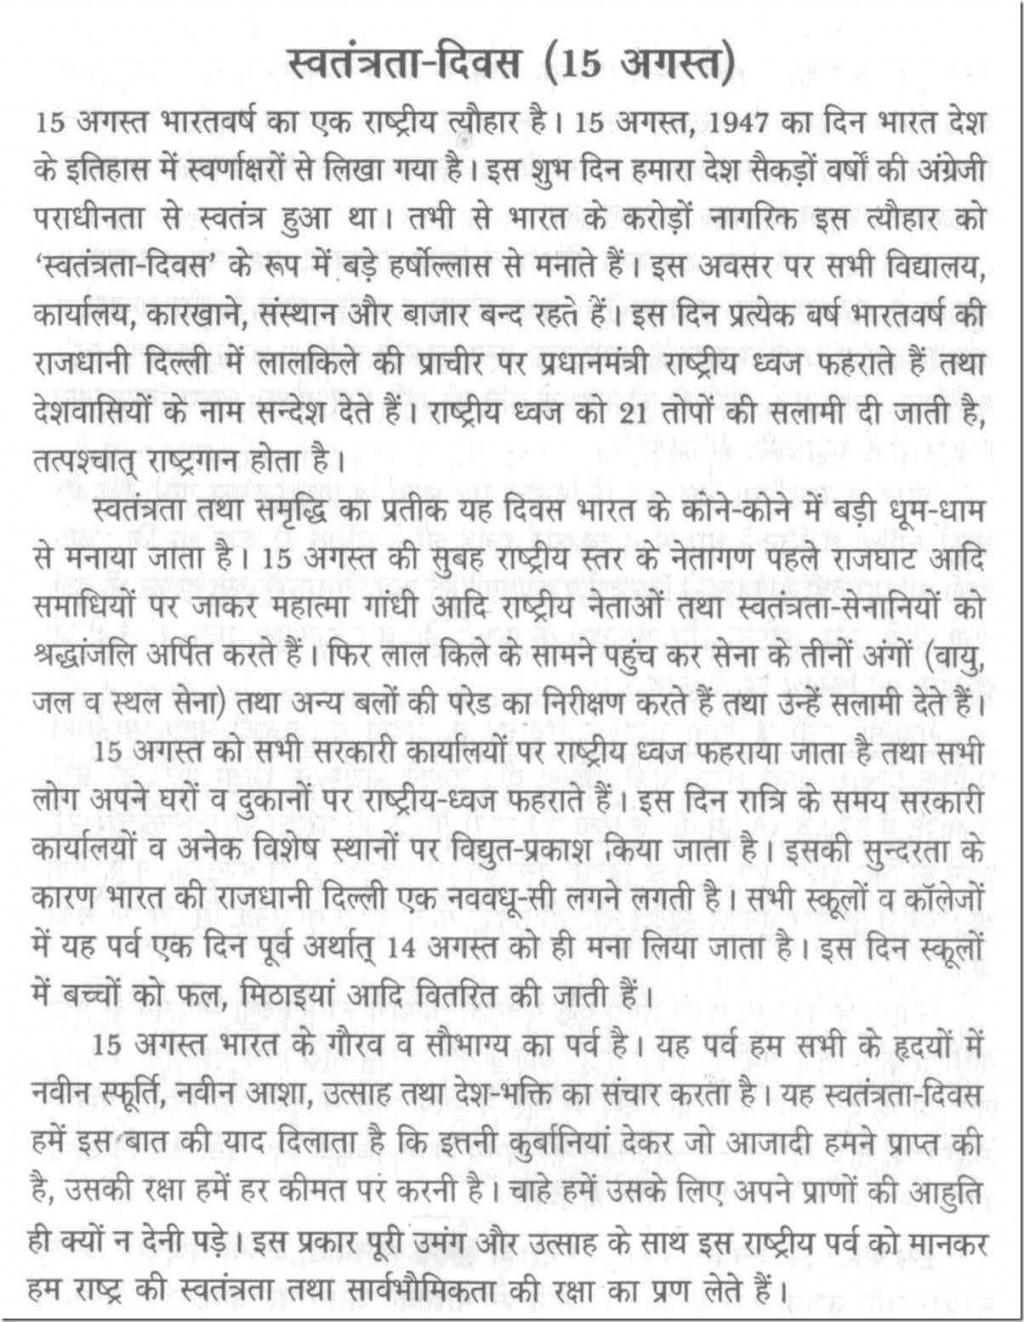 007 My Country Essay In Hindi Example Phenomenal 10 Lines Is Great Large